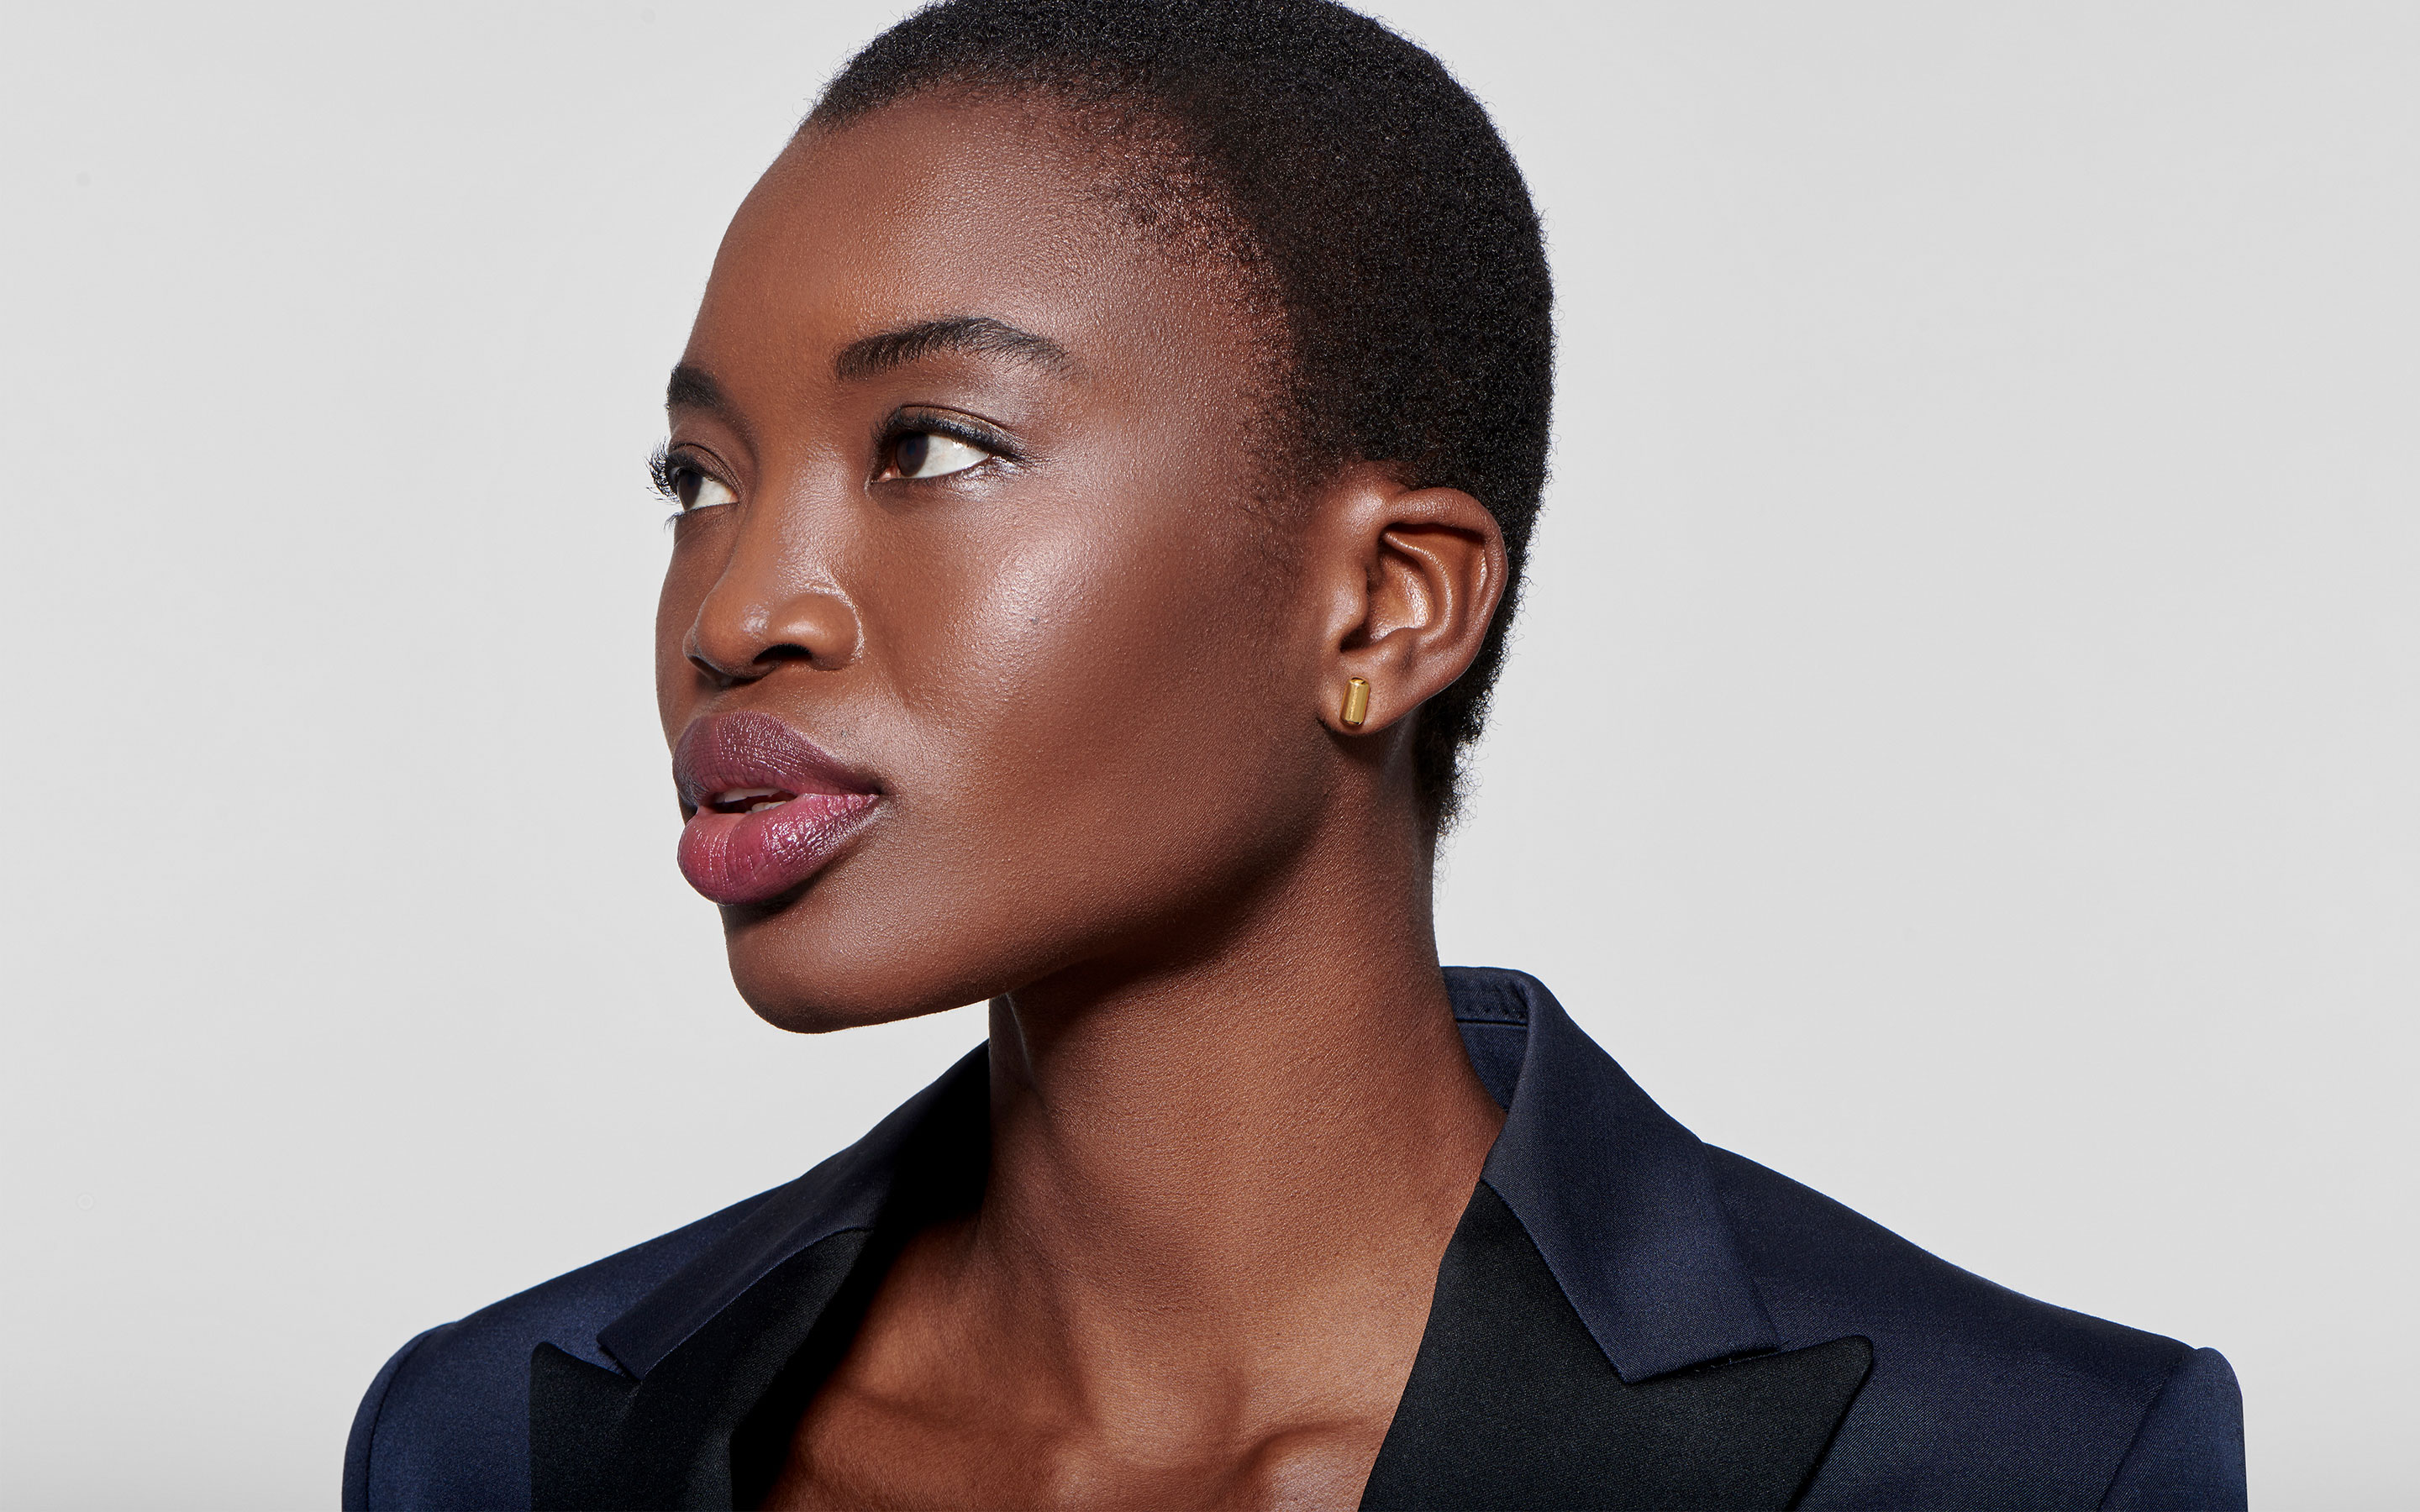 graceful black model looking pensively to the side with linear 22 karat polished gold earrings molded into barrels